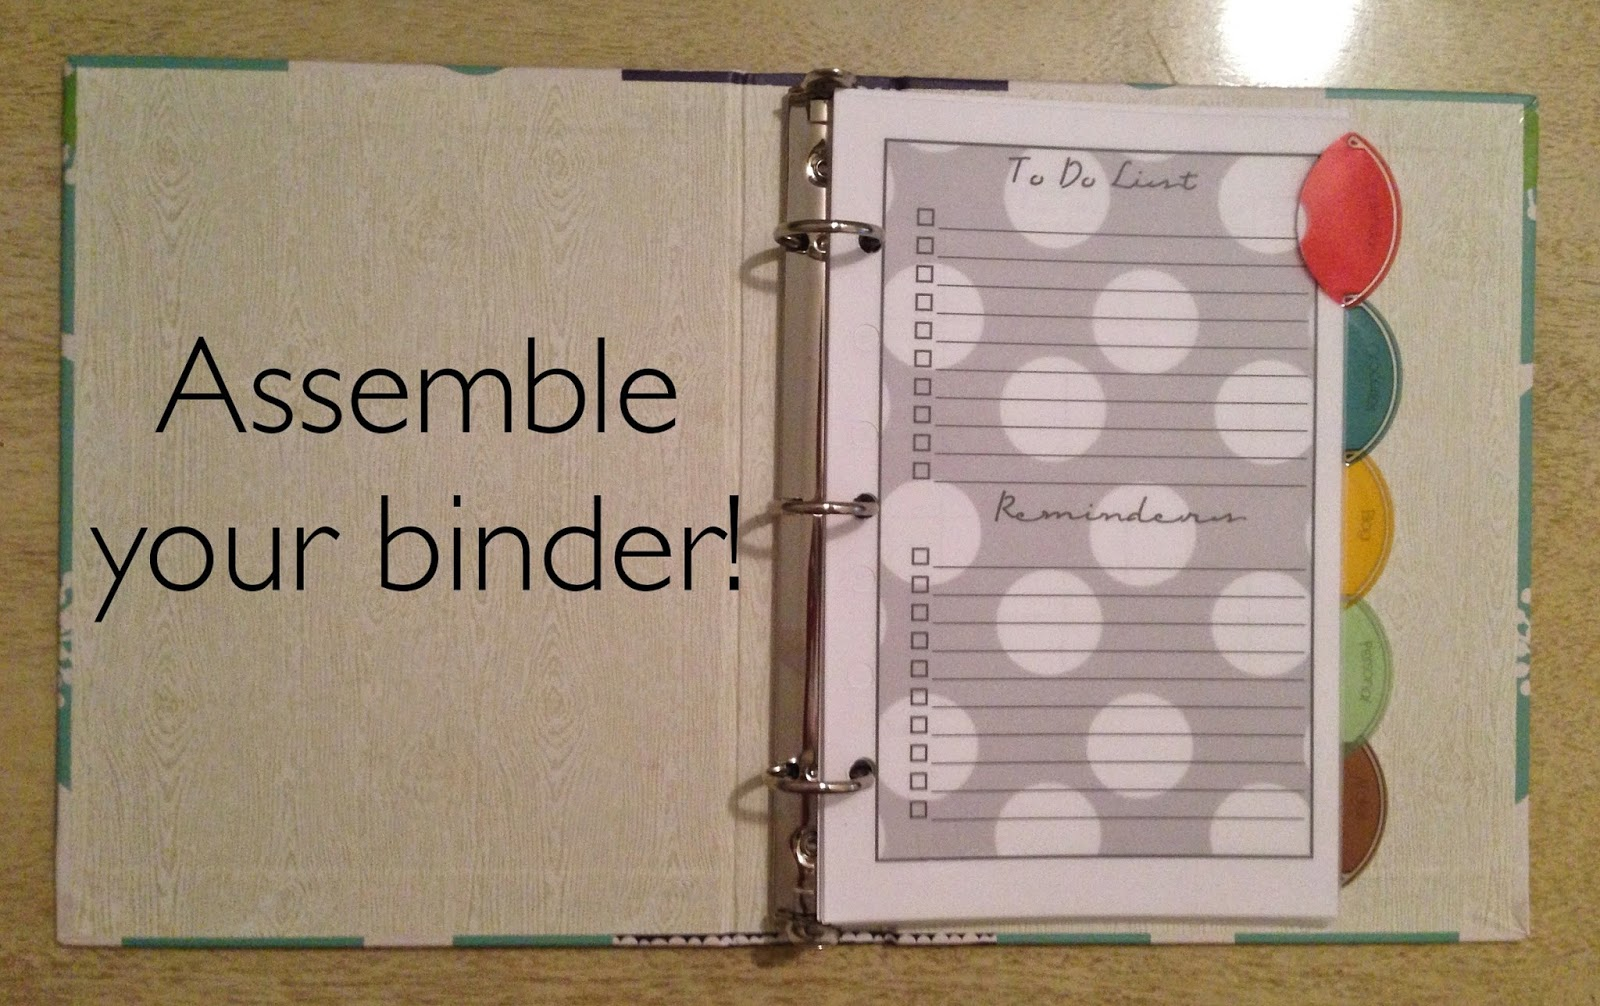 Easy as diy diy mini binder purse companion 14 free printables img2645g pronofoot35fo Images